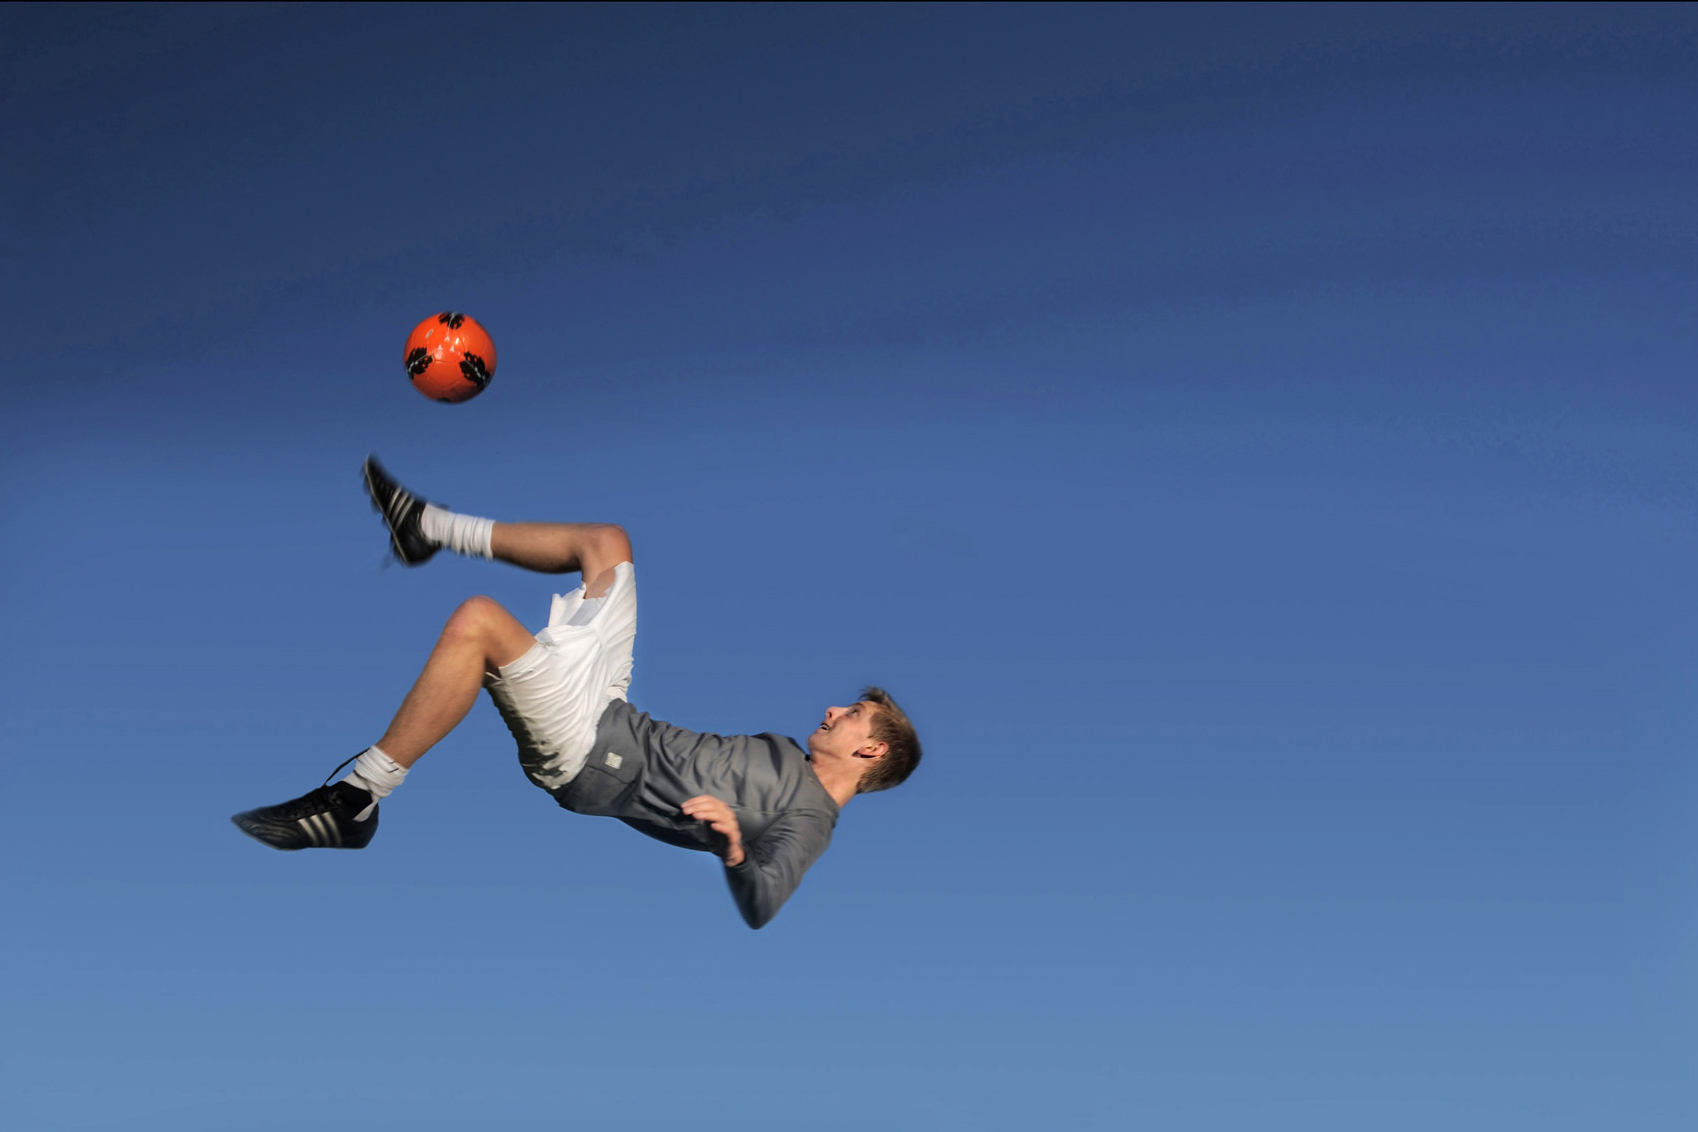 A Birmingham senior in Michigan leaps into the air showcasing his soccer skills for his senior photos.